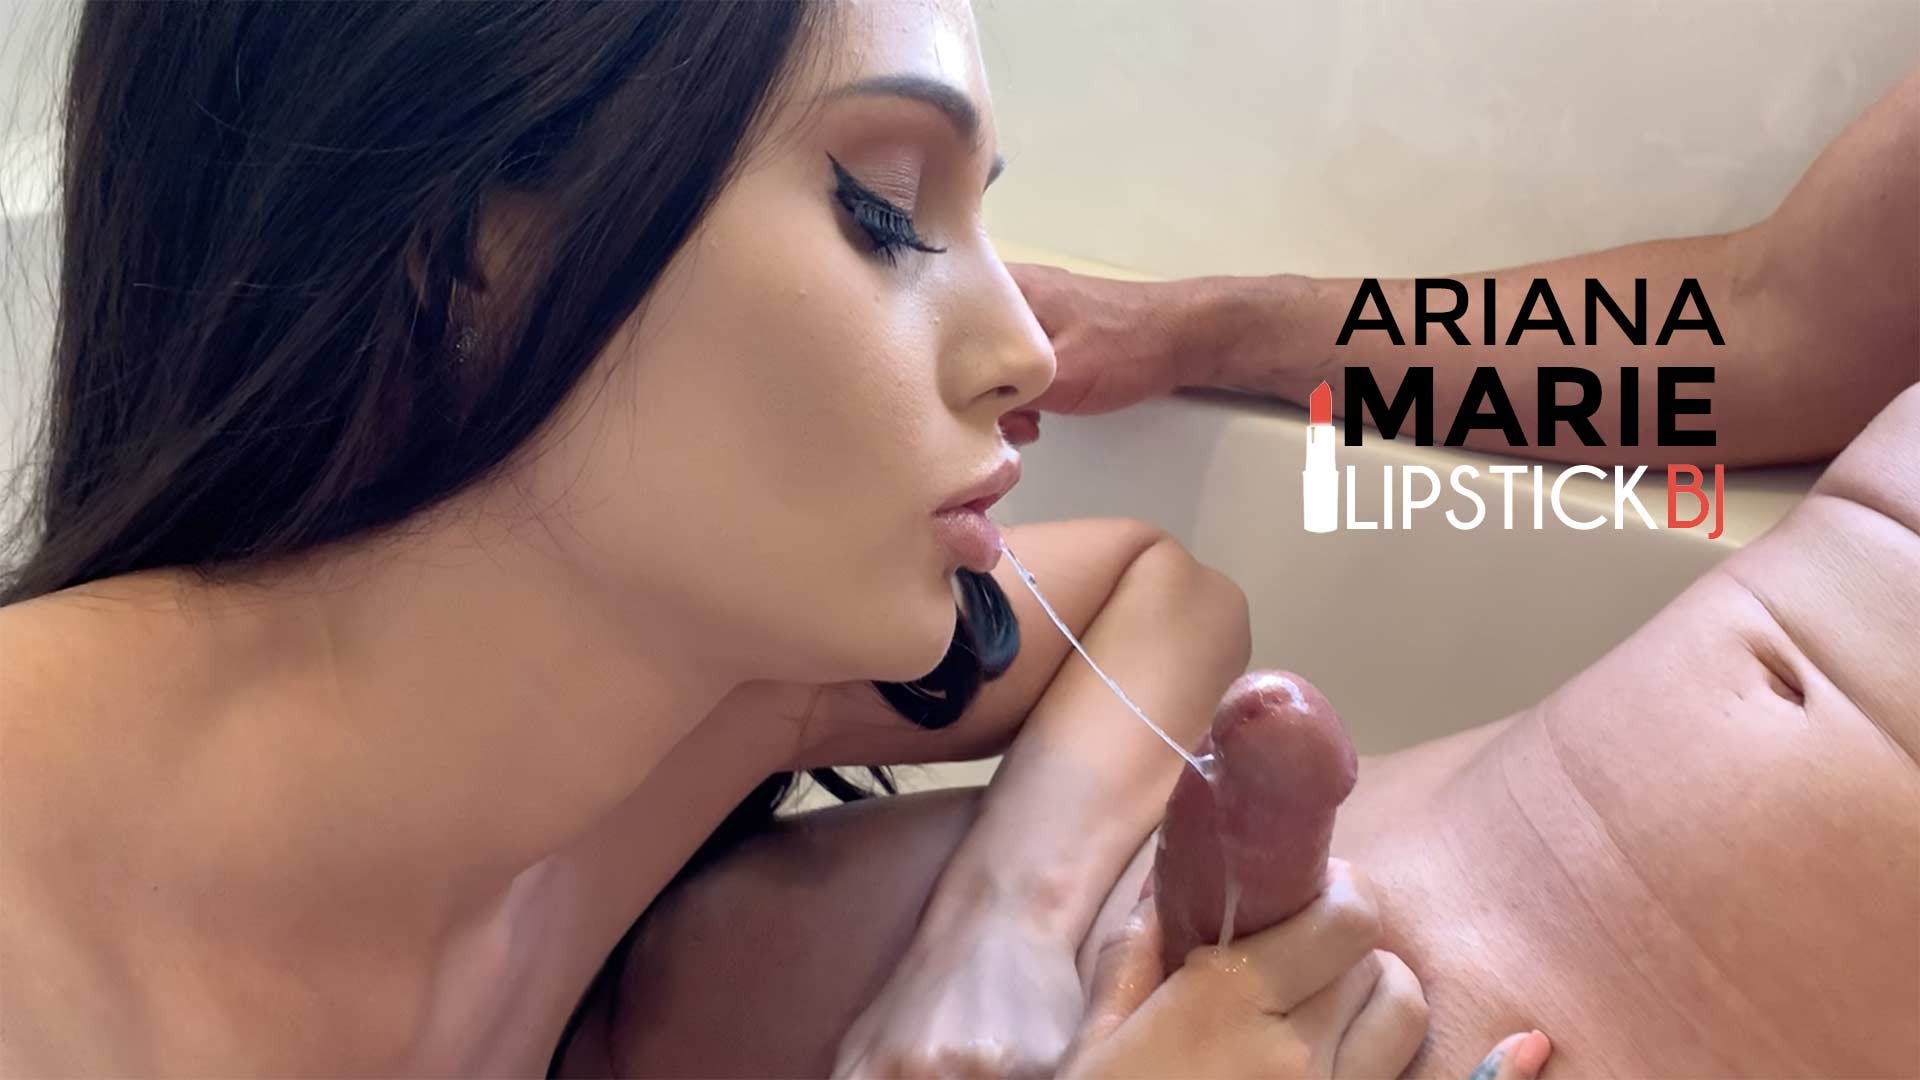 Ariana Marie Gives a Lipstick Blowjob